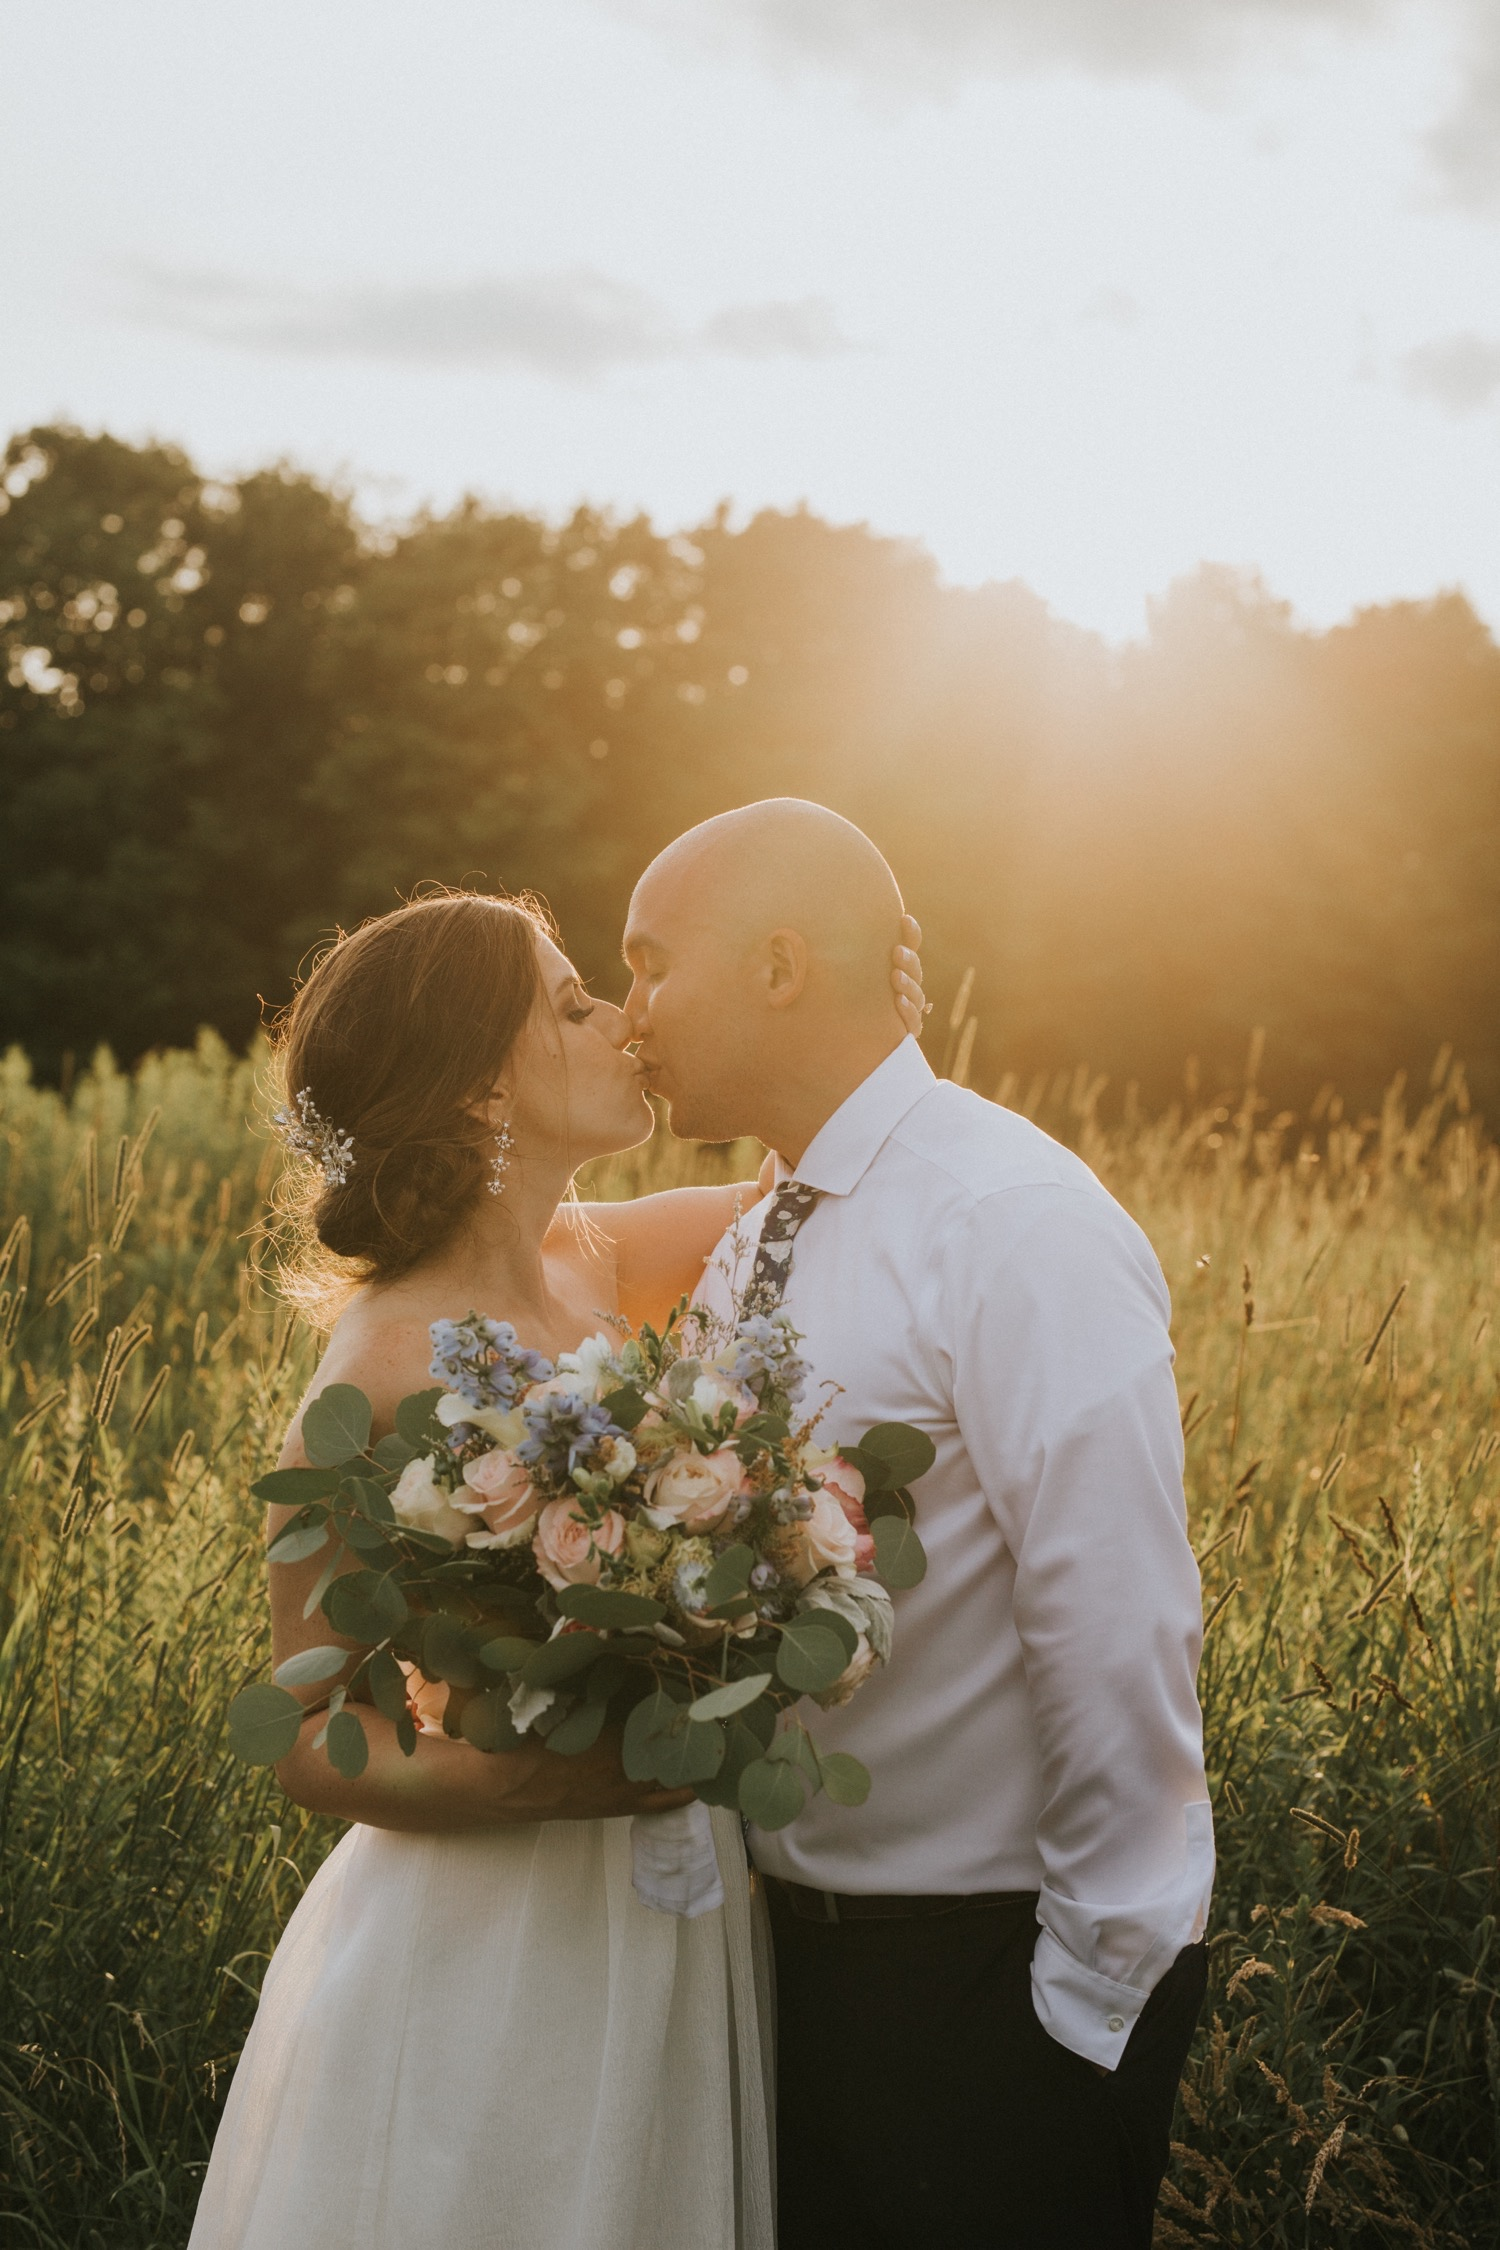 Wedding Invitations, Fiddle Lakes Farm, Fiddle Lakes Wedding, Hudson Valley Wedding Photographer, New York Wedding Photographer, Bridal PArty, Sunset Photos